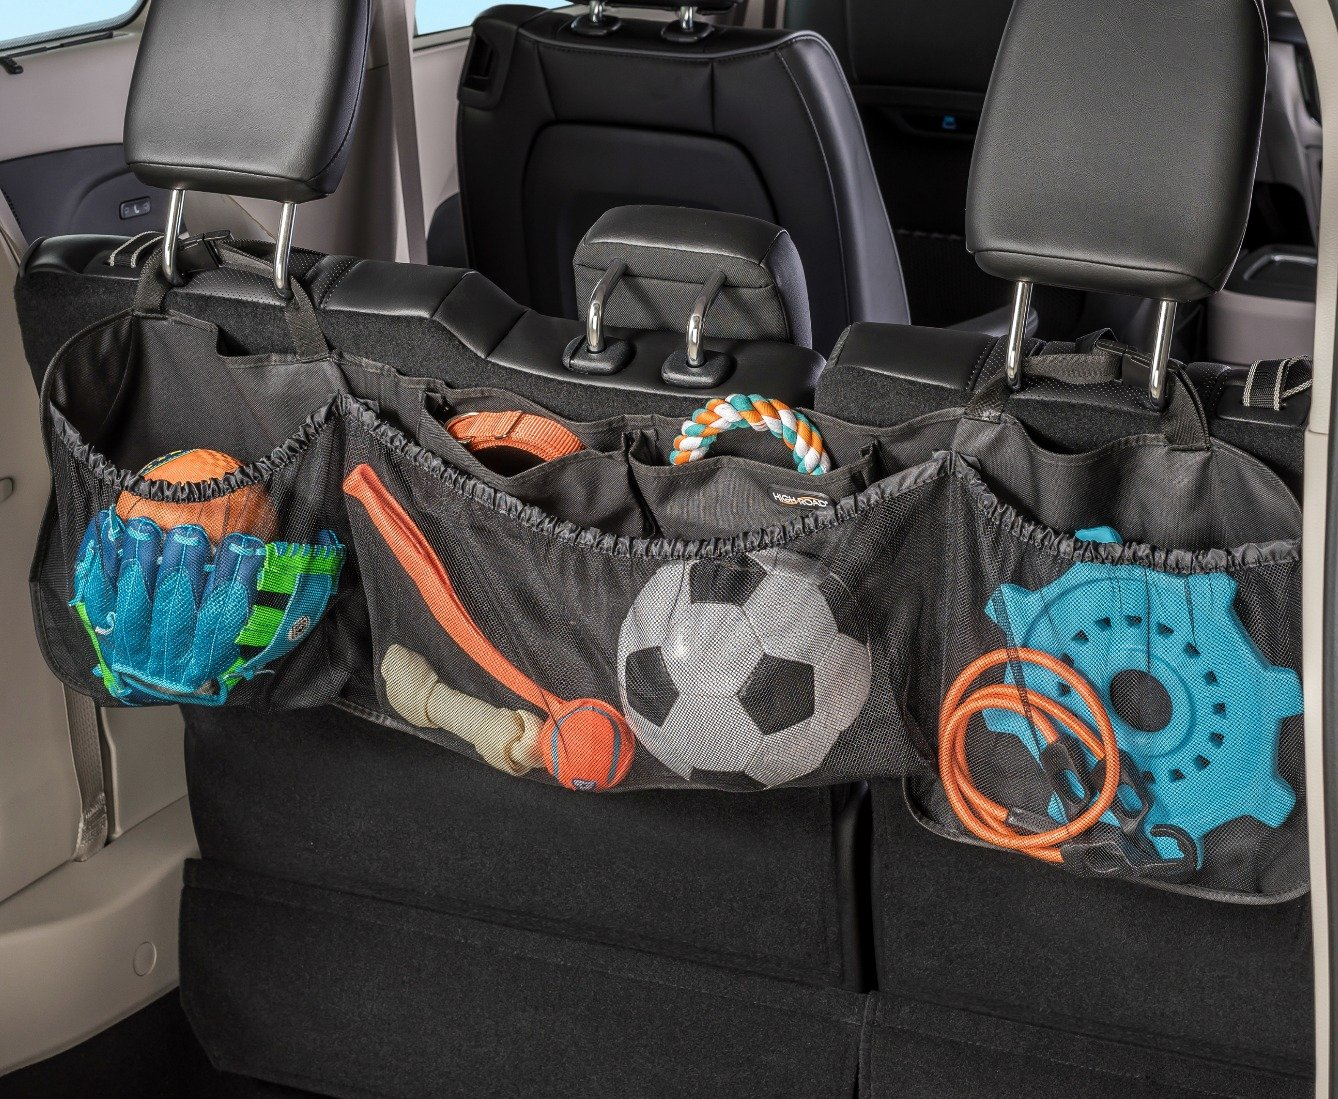 High Road Cargo Pack Car Seat Back Organizer High Road Organizers HR-5515-05